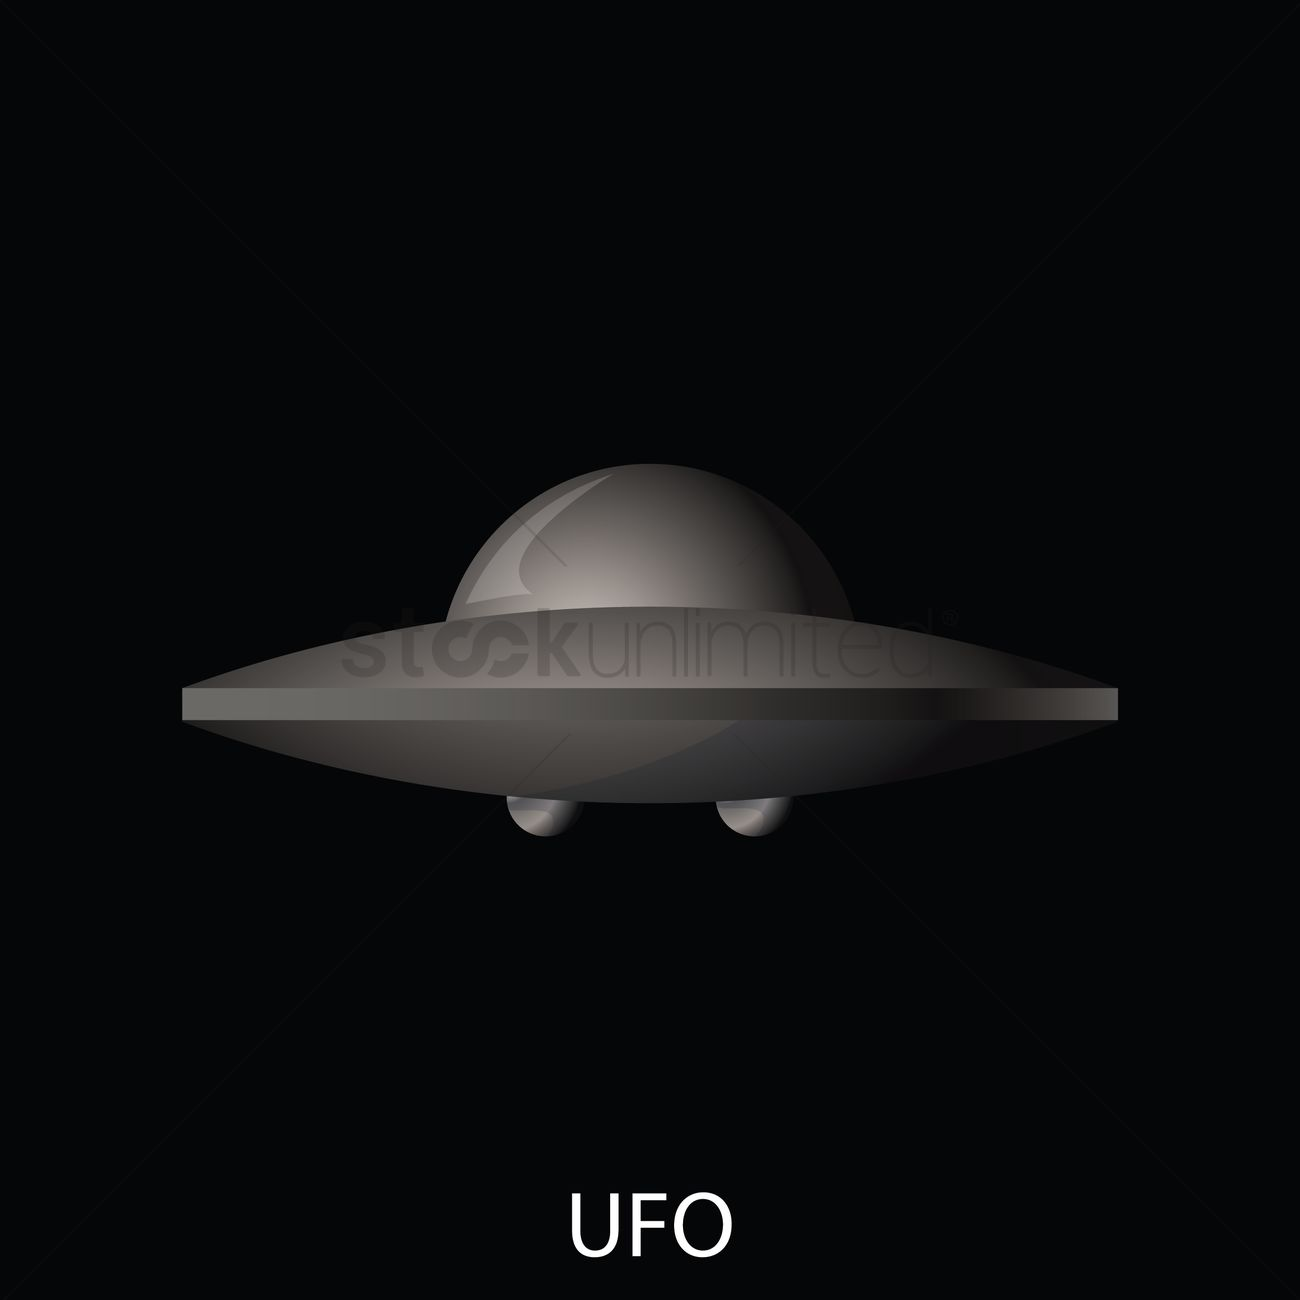 Ufo against black background Vector Image - 1826724 | StockUnlimited for Ufo Black Background  66pct